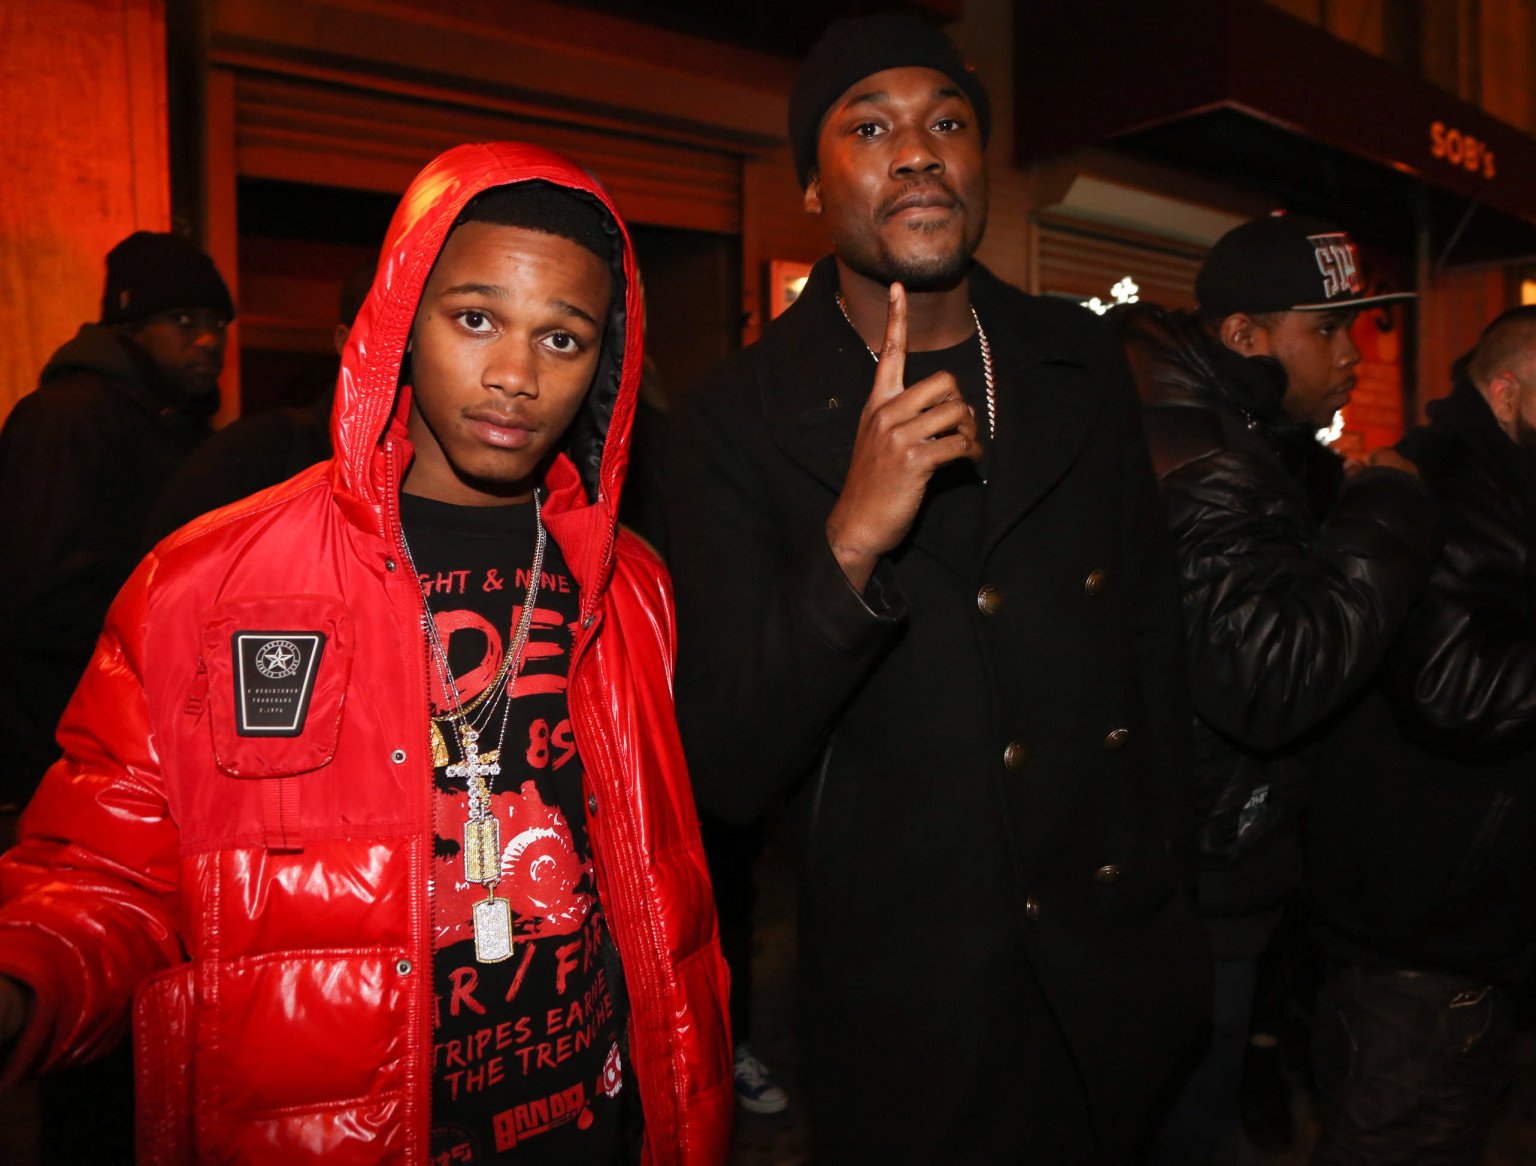 Lil jojo dead body pictures to pin on pinterest - Lil Snupe Funeral Attended By Hundreds As Slain Rapper Laid To Rest In Hometown Report Huffpost